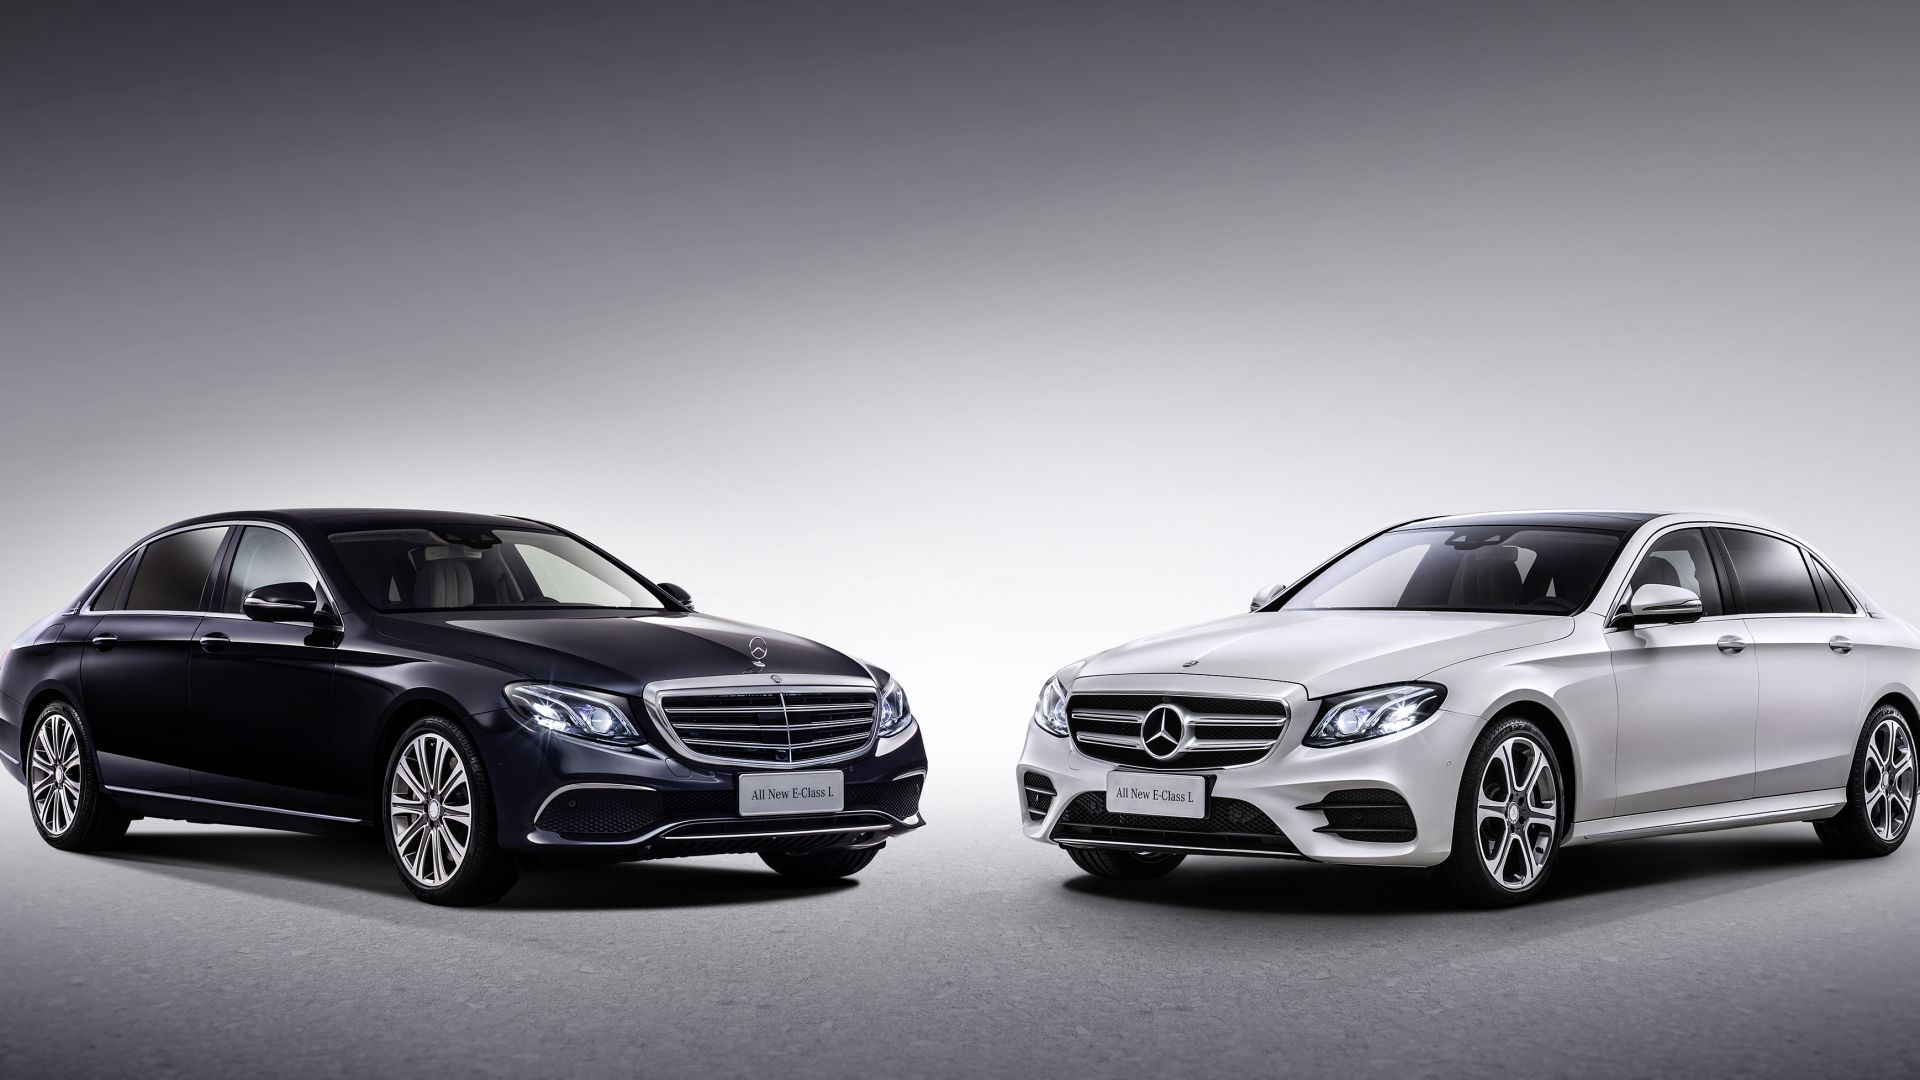 Mercedes-Benz E 320 L Exclusive Line, Beijing Motor Show 2016, Auto China 2016, 4MATIC, e class, sedan (horizontal)